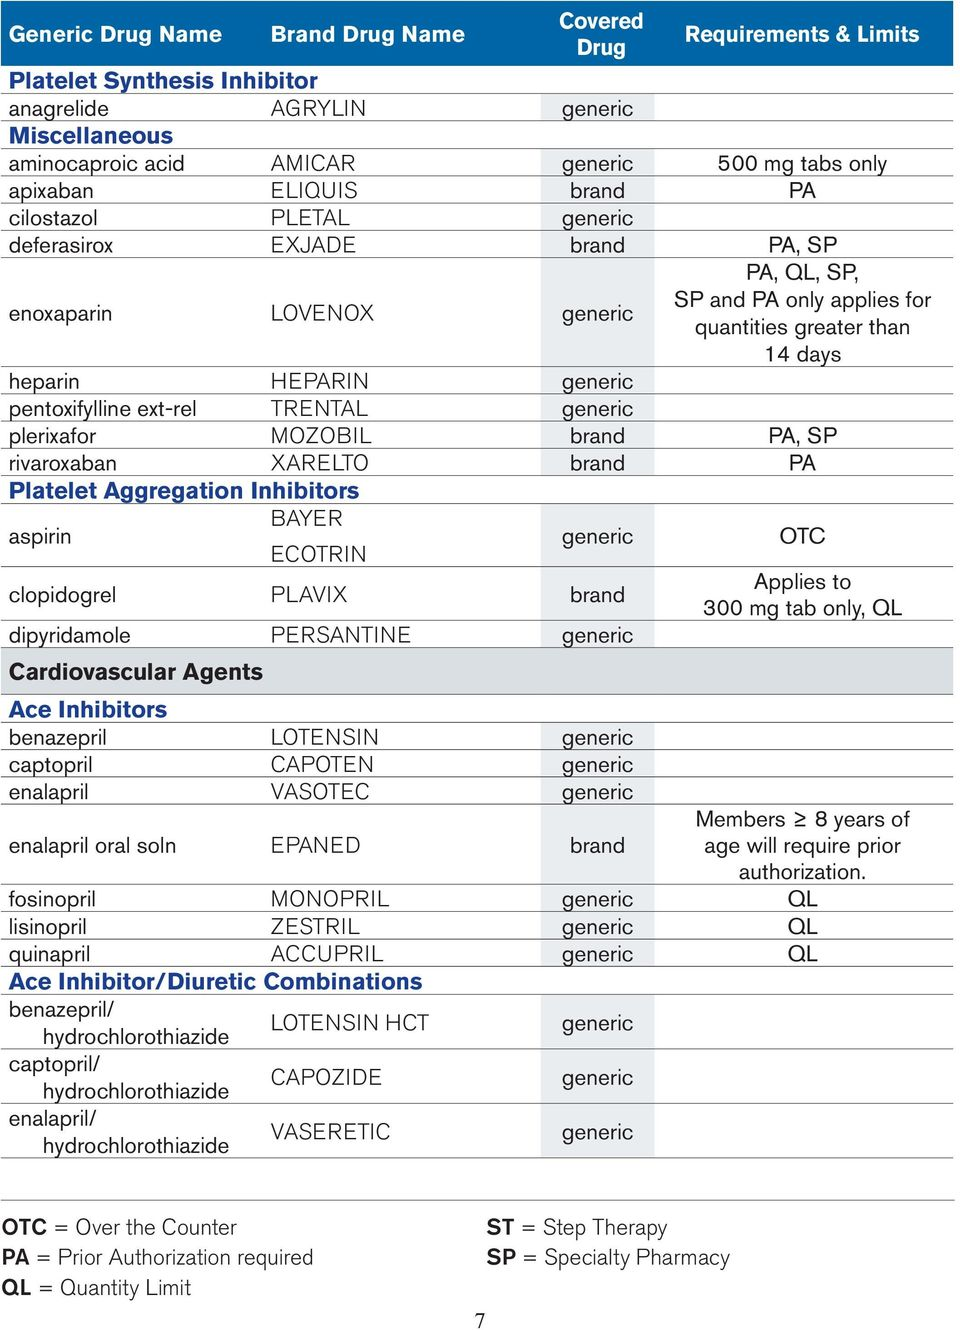 Preferred Drug List (PDL) - PDF